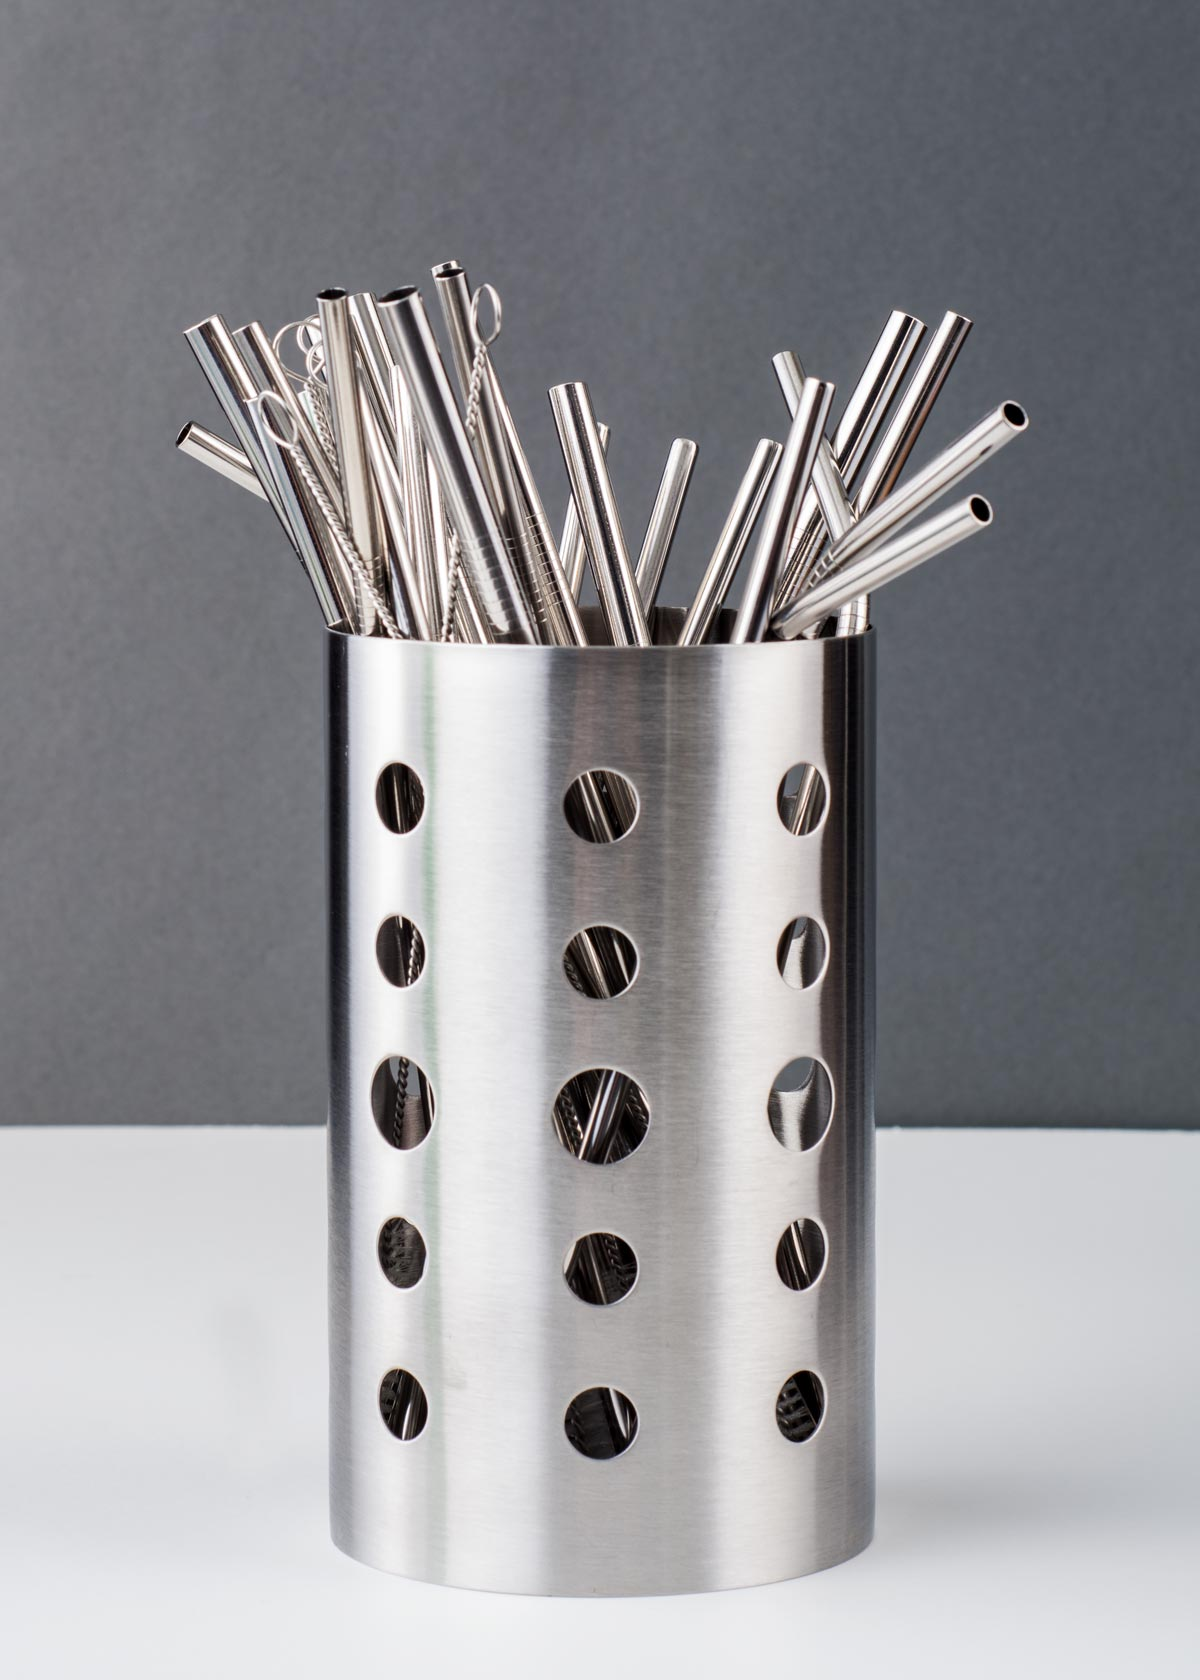 family set stainless steel straw holder dryer